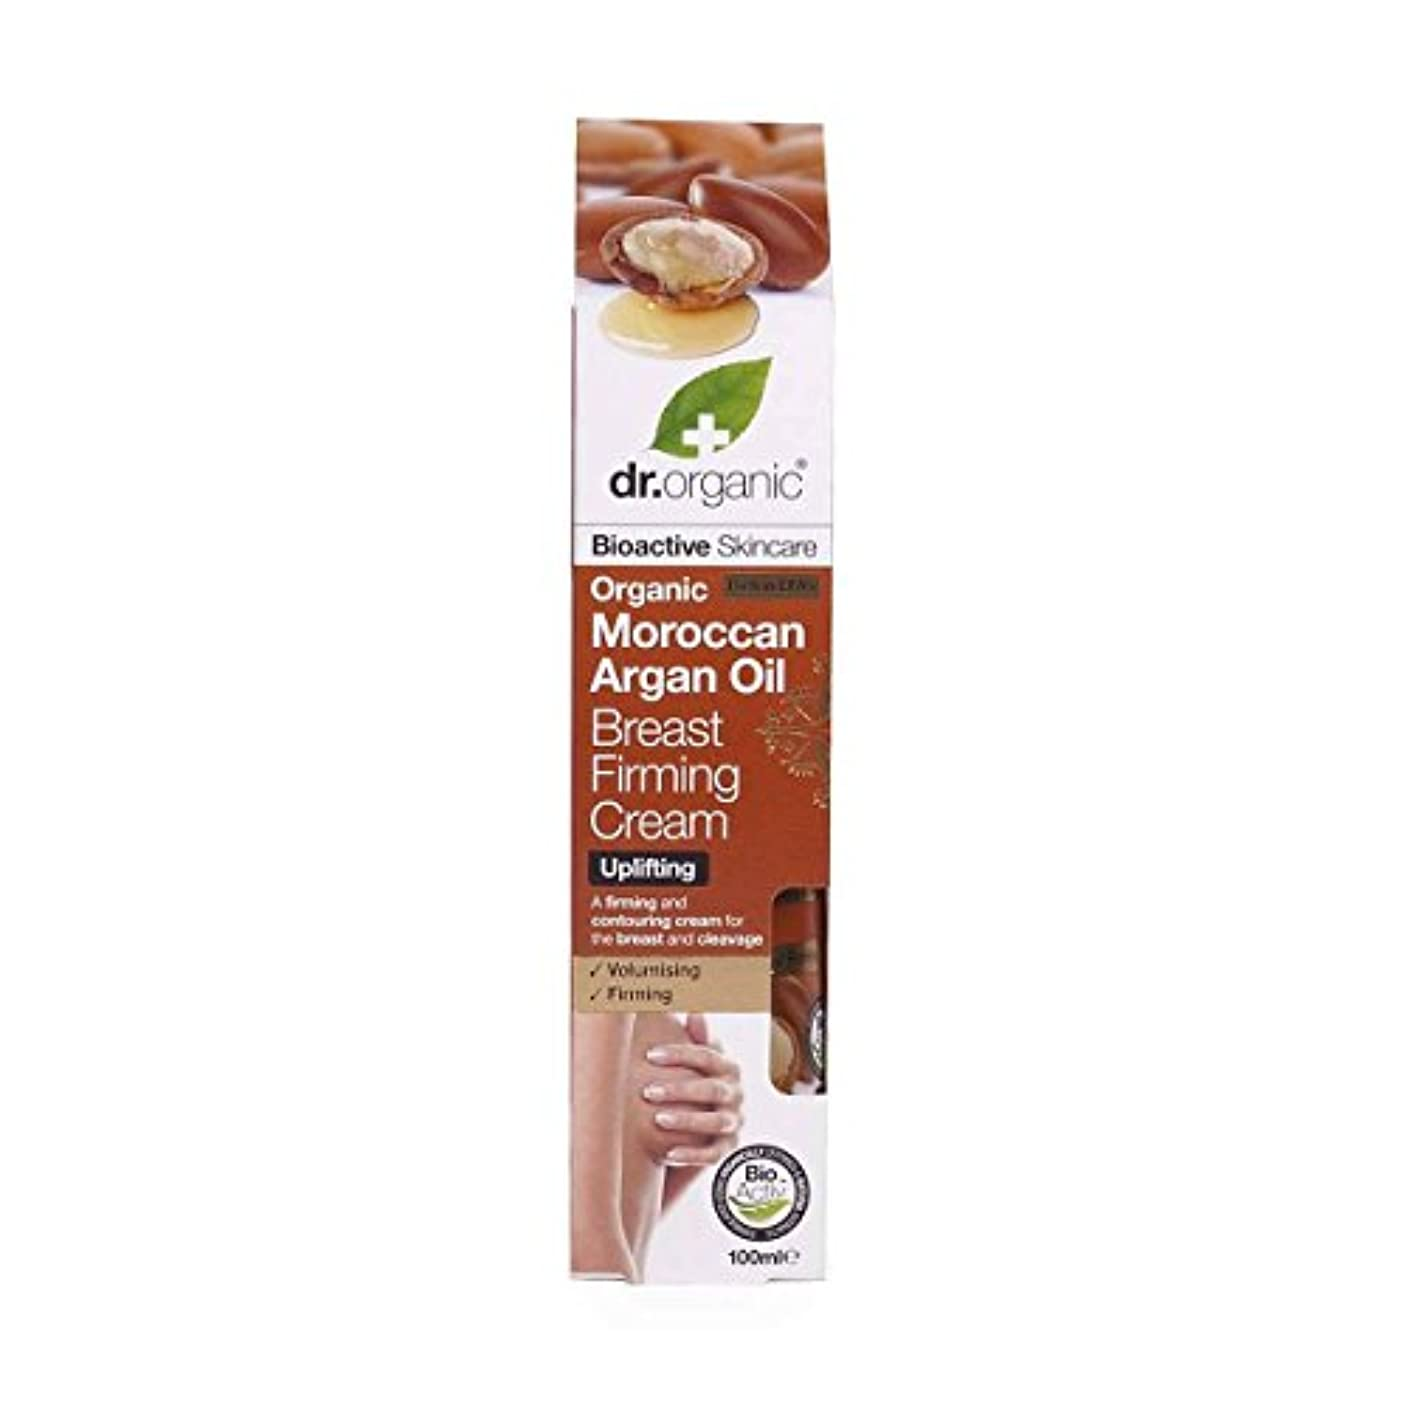 噛む電極激怒Dr. Organic Organic Moroccan Argan Oil Breast Firming Cream 100ml [並行輸入品]